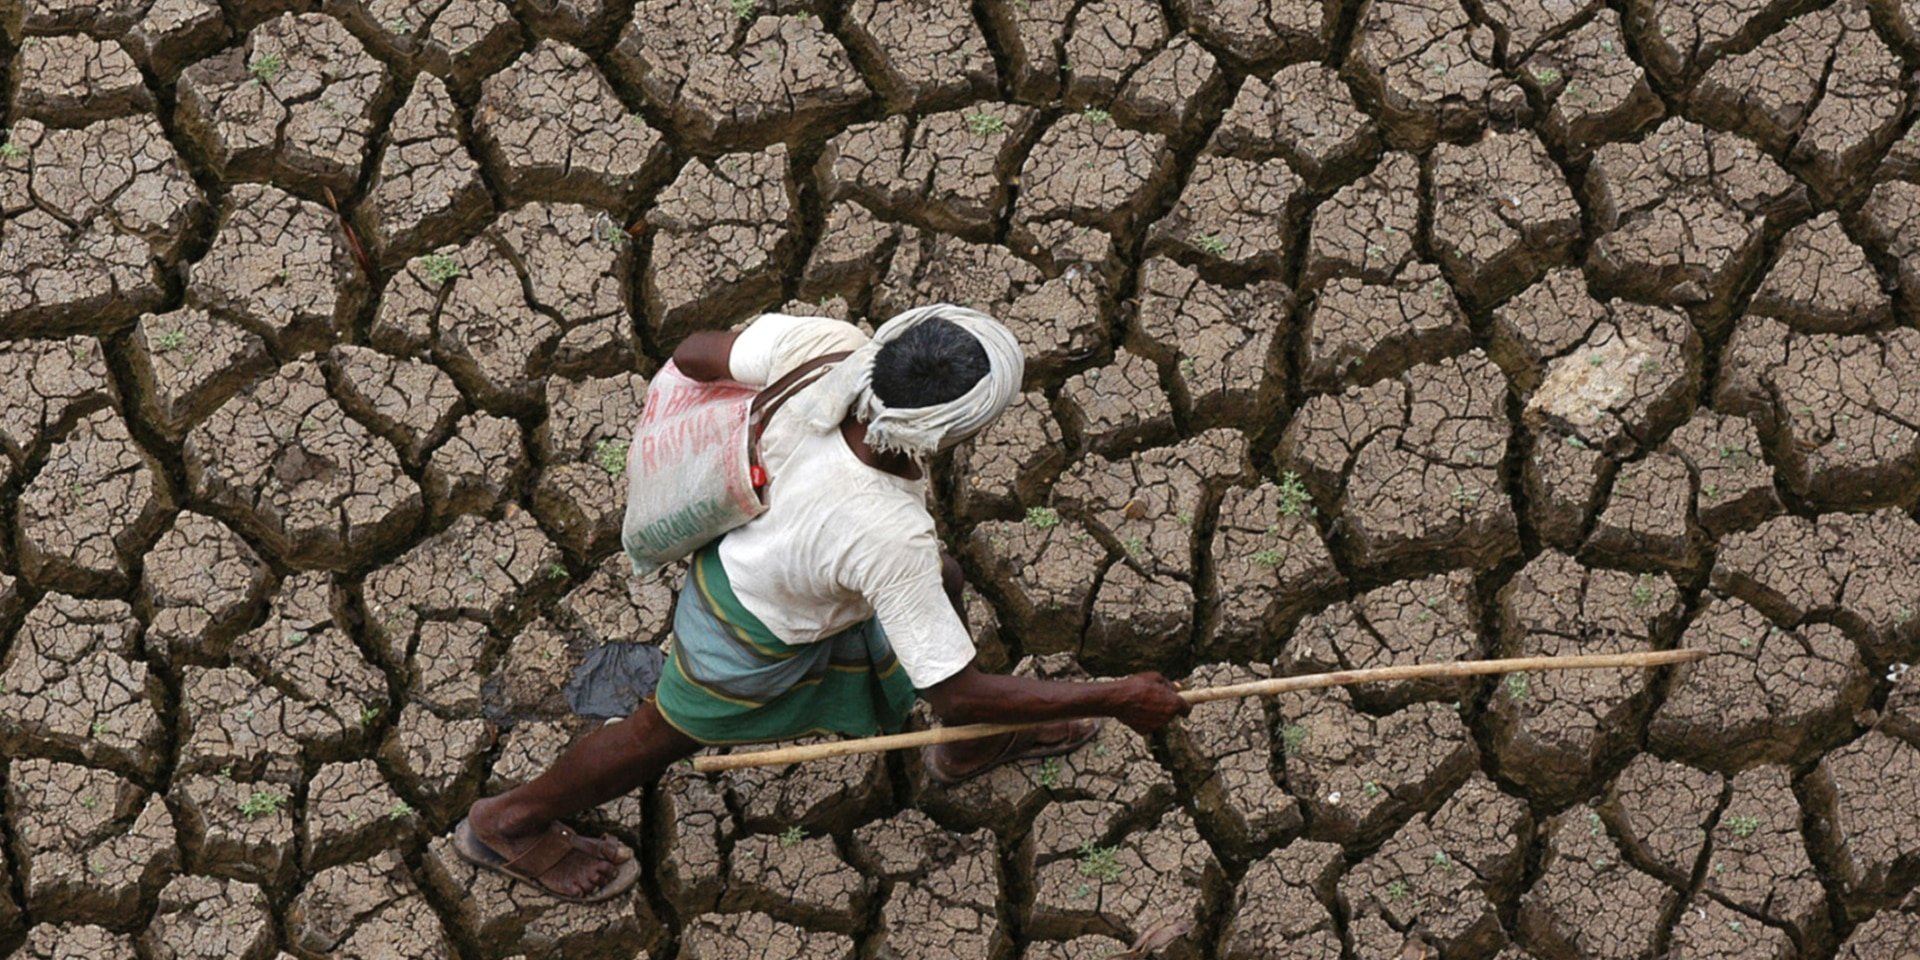 A man walking across a parched field.